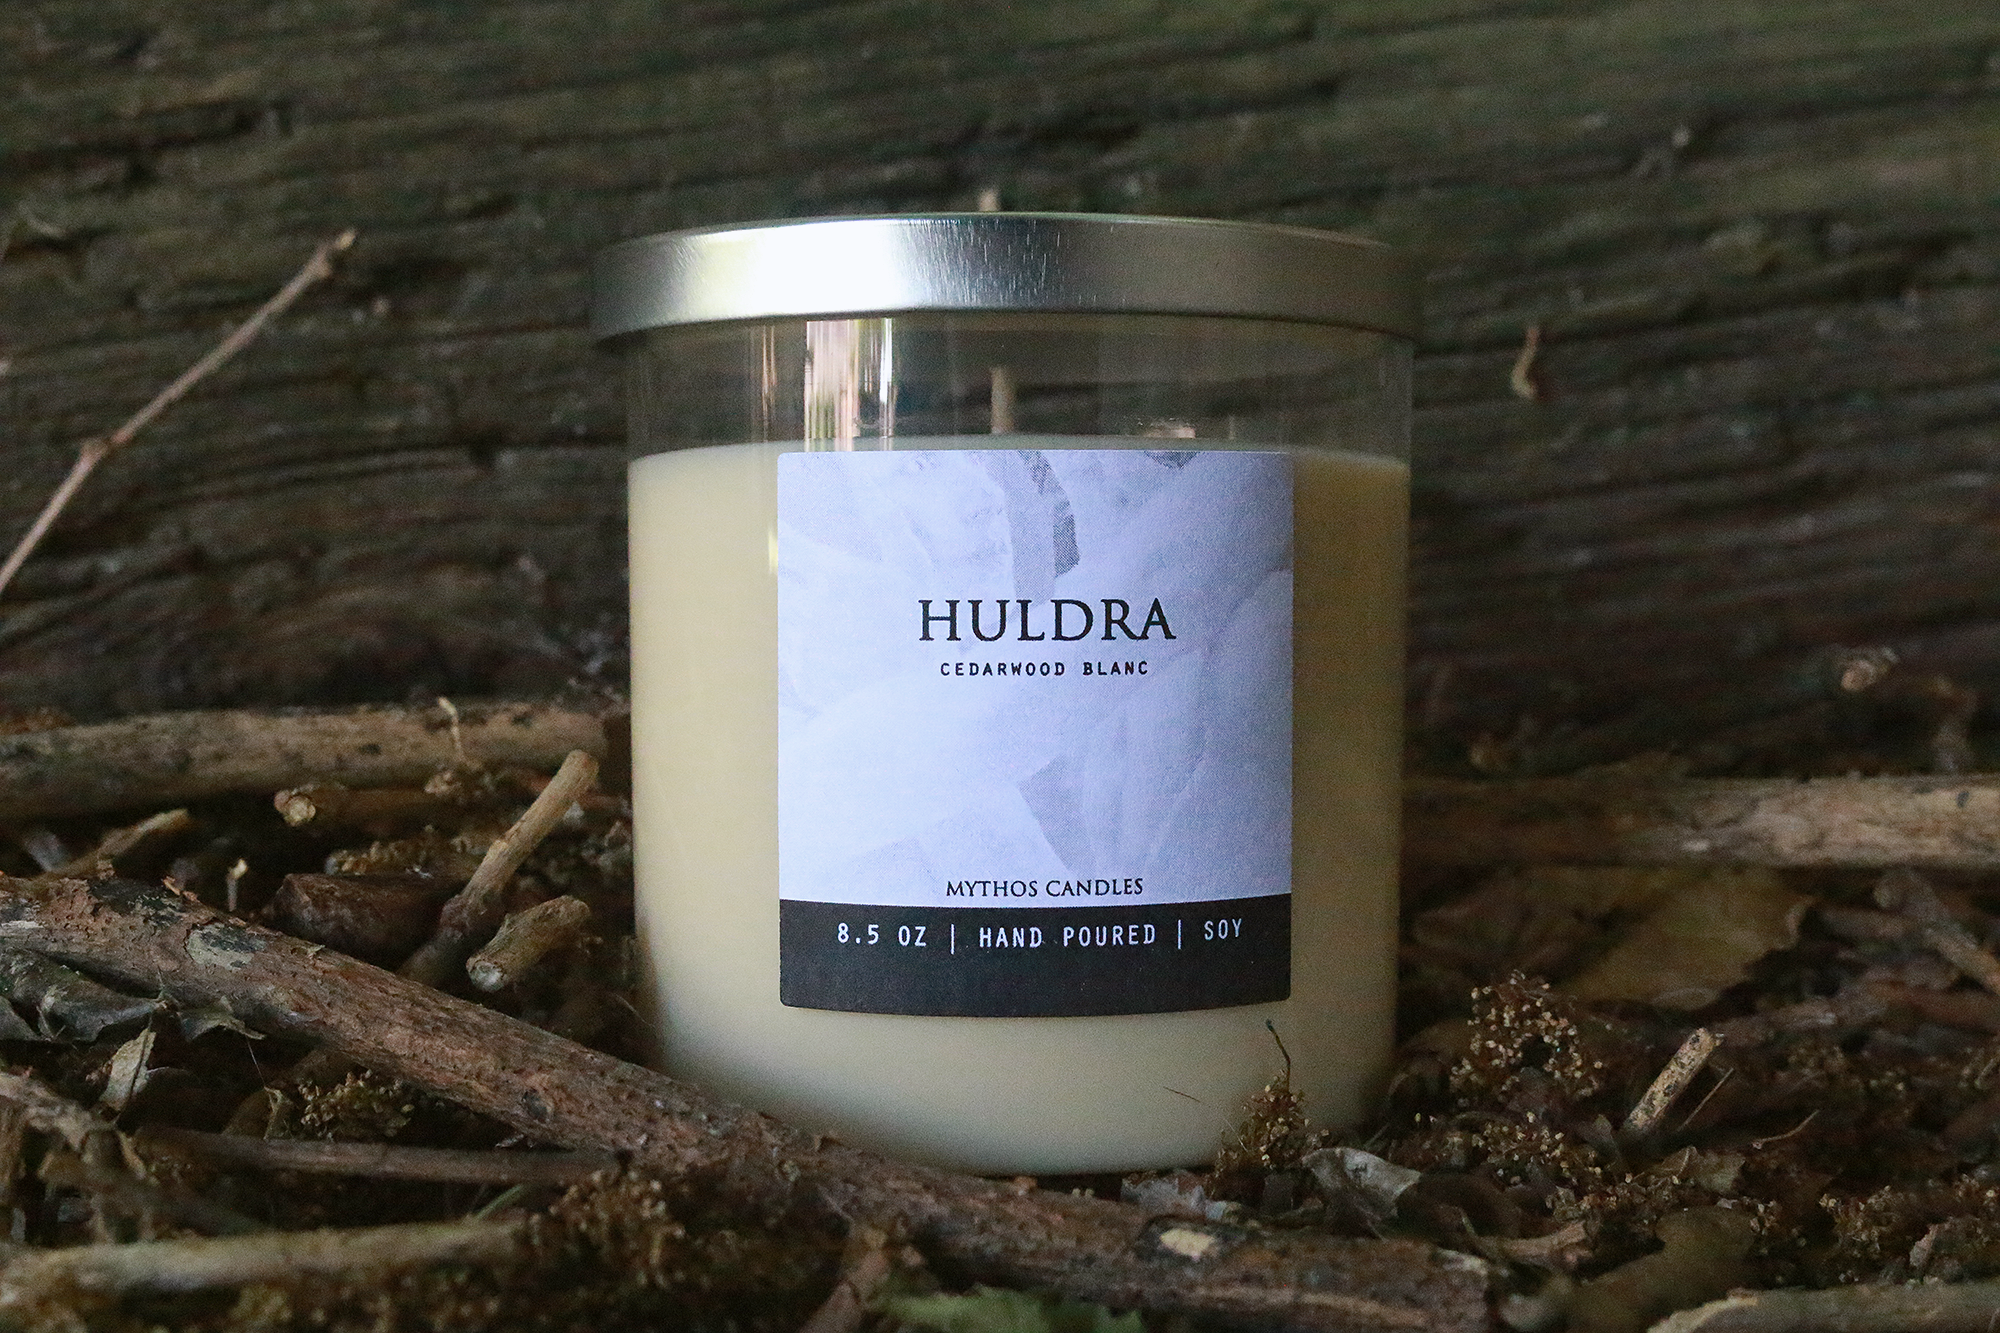 Mythos Candles 8.5oz Huldra (Cedarwood Blanc) Soy Candle